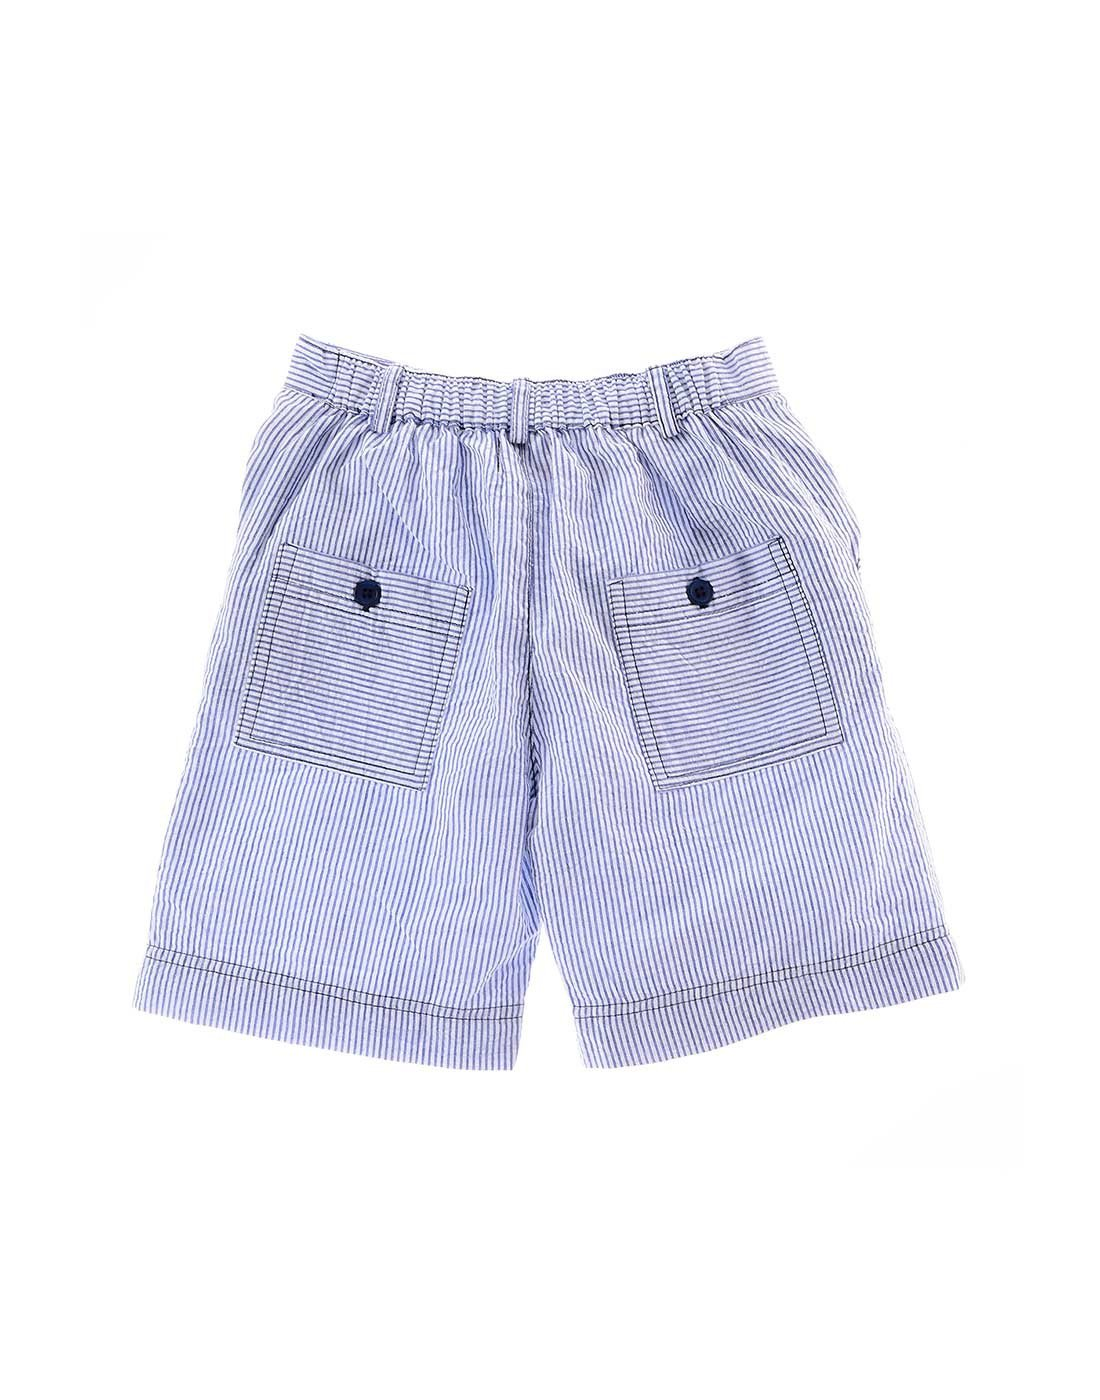 The Sumer - Boys  Blue & White Seersucker Shorts